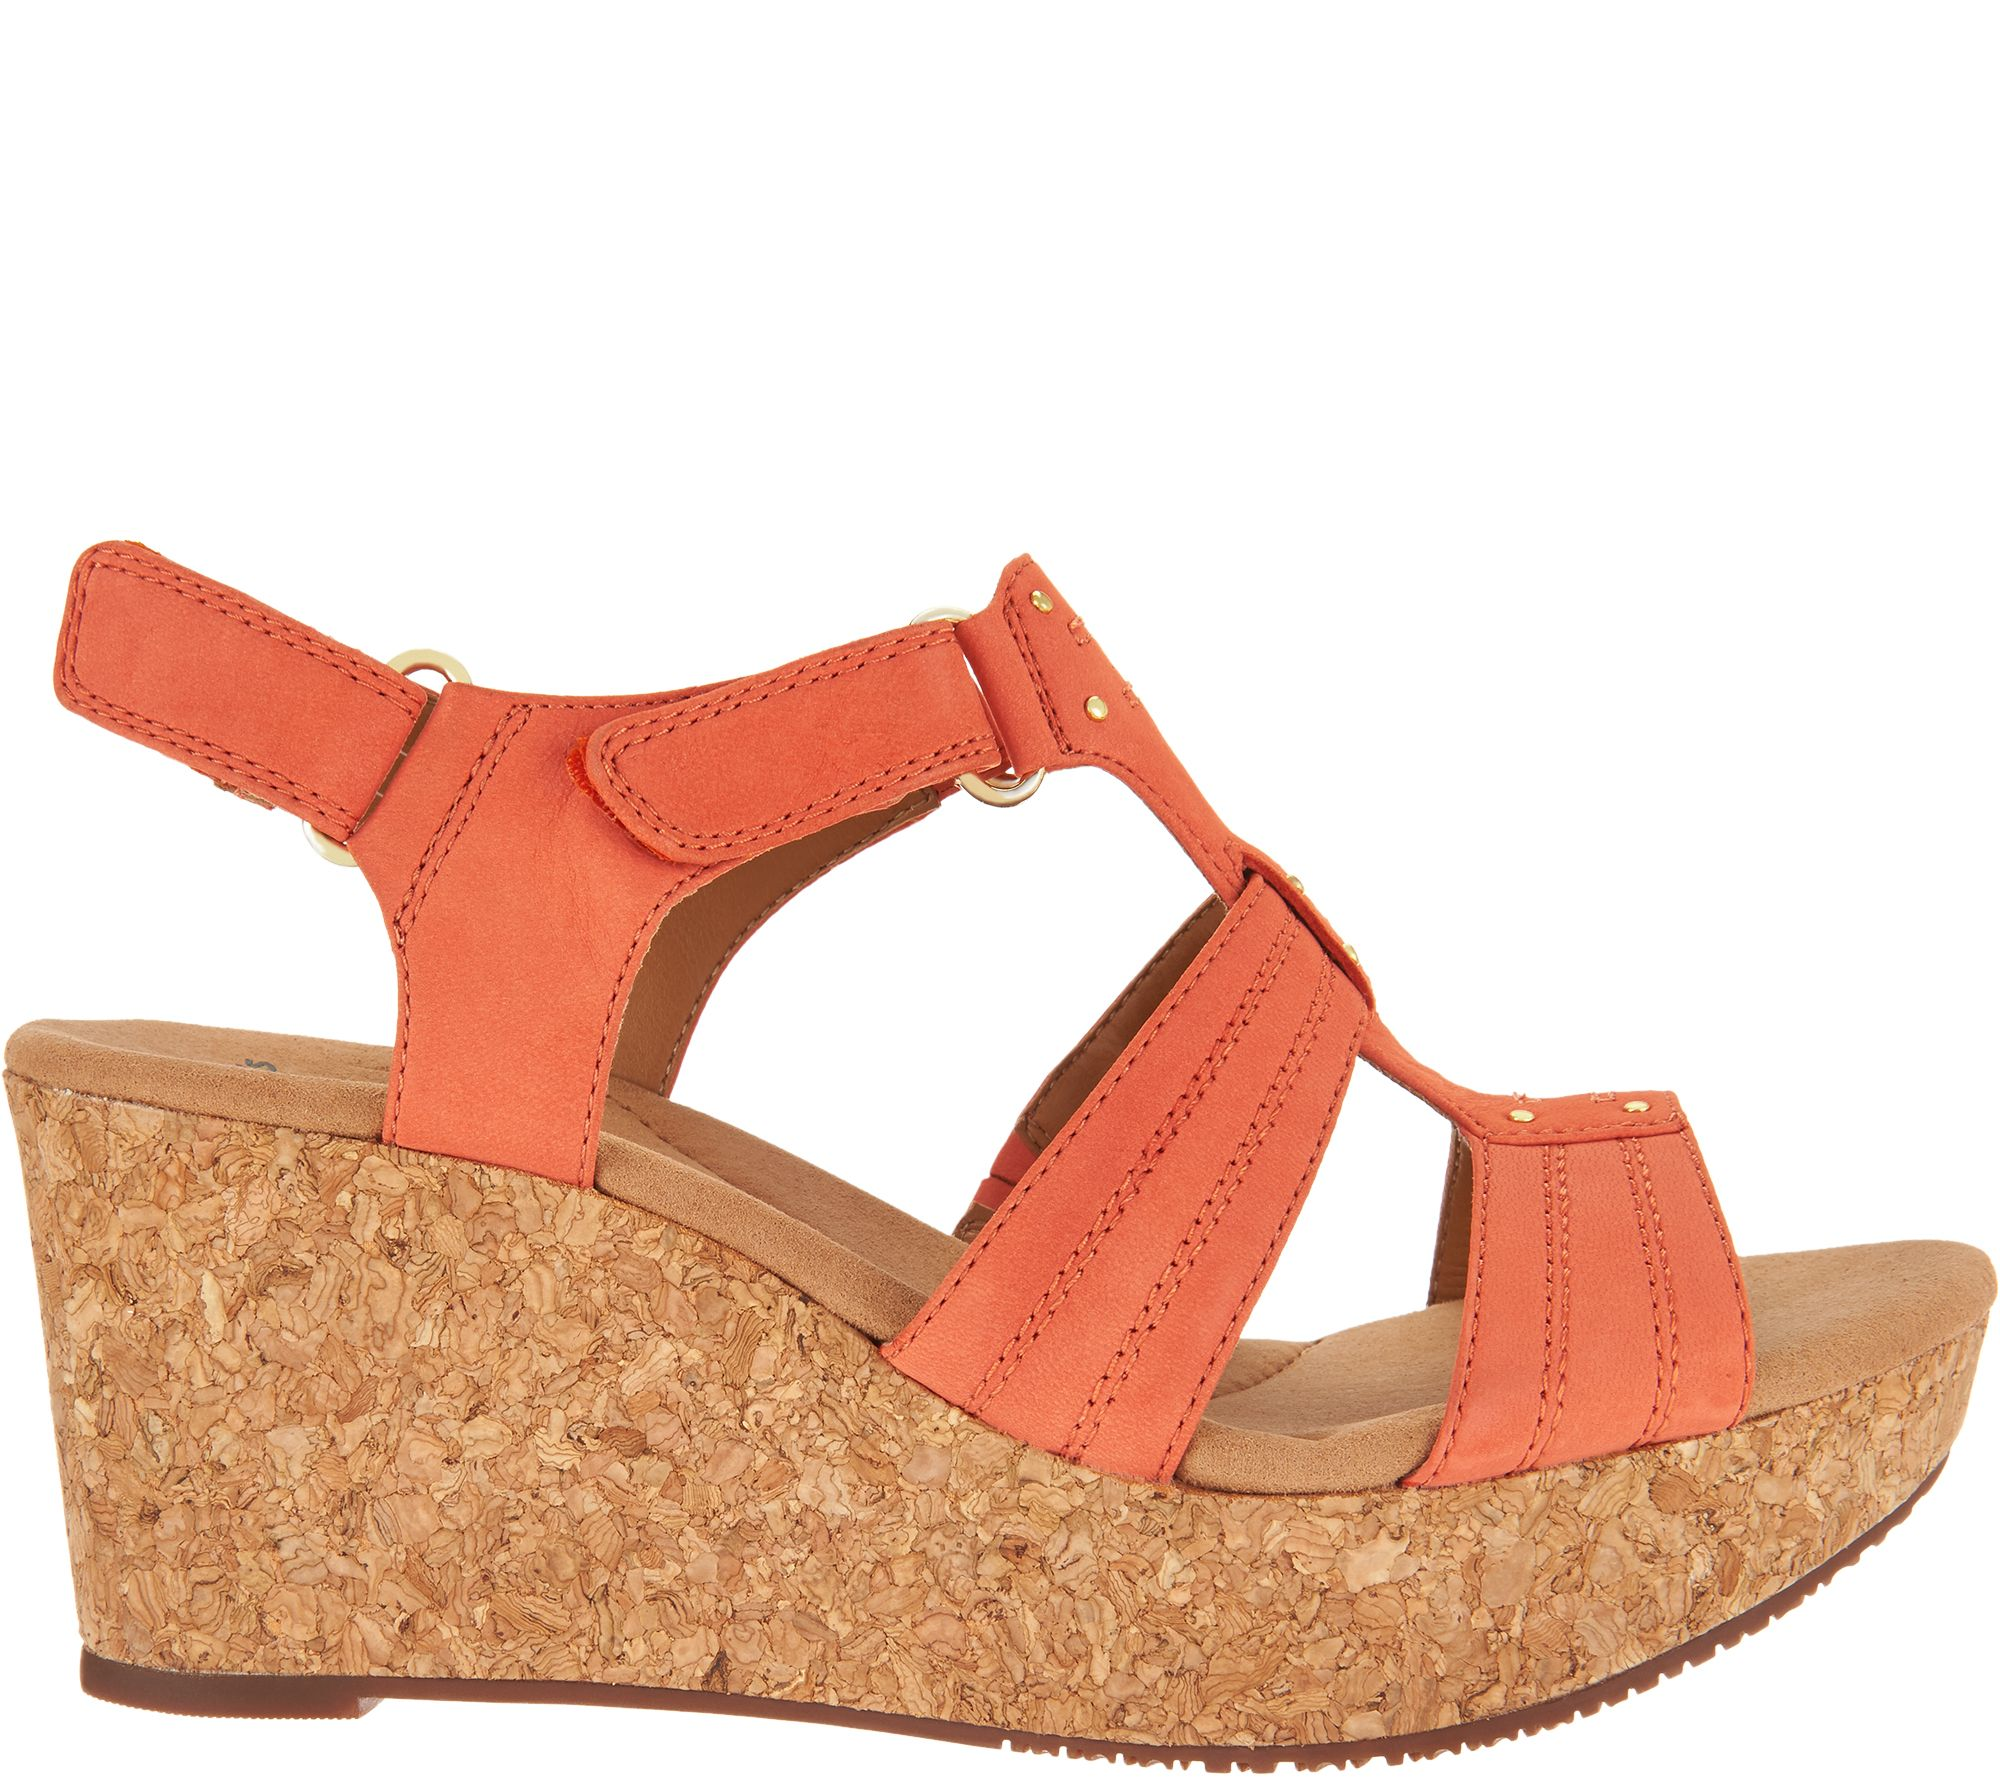 21377be493e Clarks Leather Triple Adjust Wedge Sandals - Annadel Orchid - Page 1 —  QVC.com